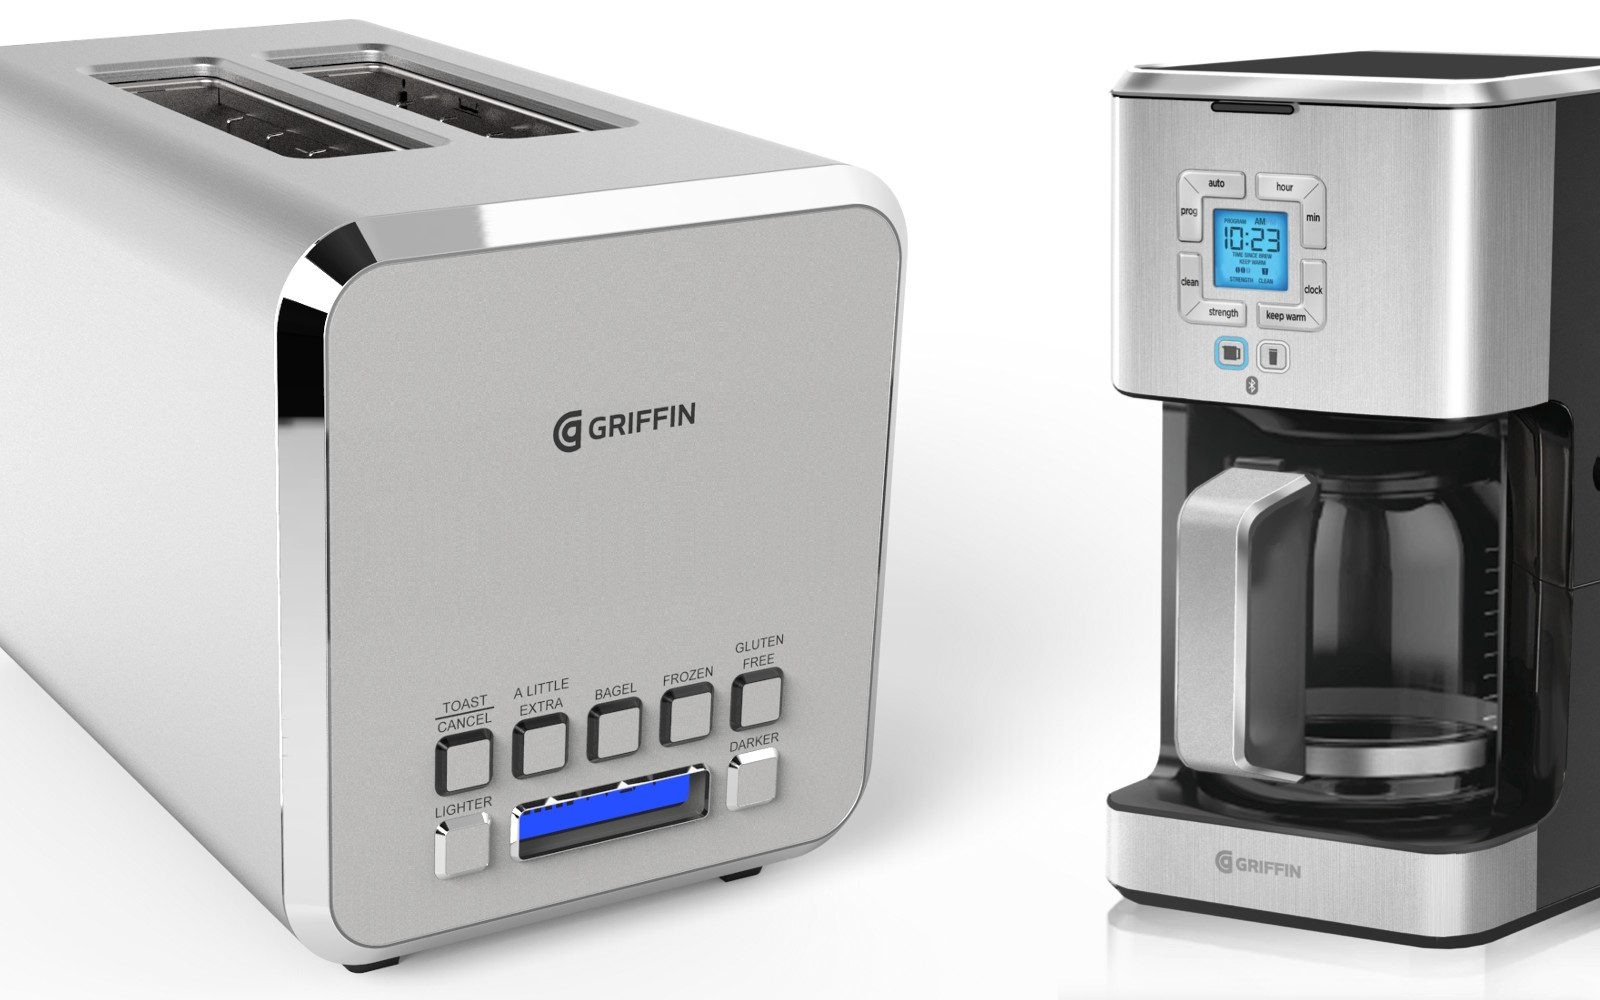 Griffin Looks To Make Your Morning Routine Smarter W New The Connected Toaster Coffee Maker And Futuristic HUD Mirror